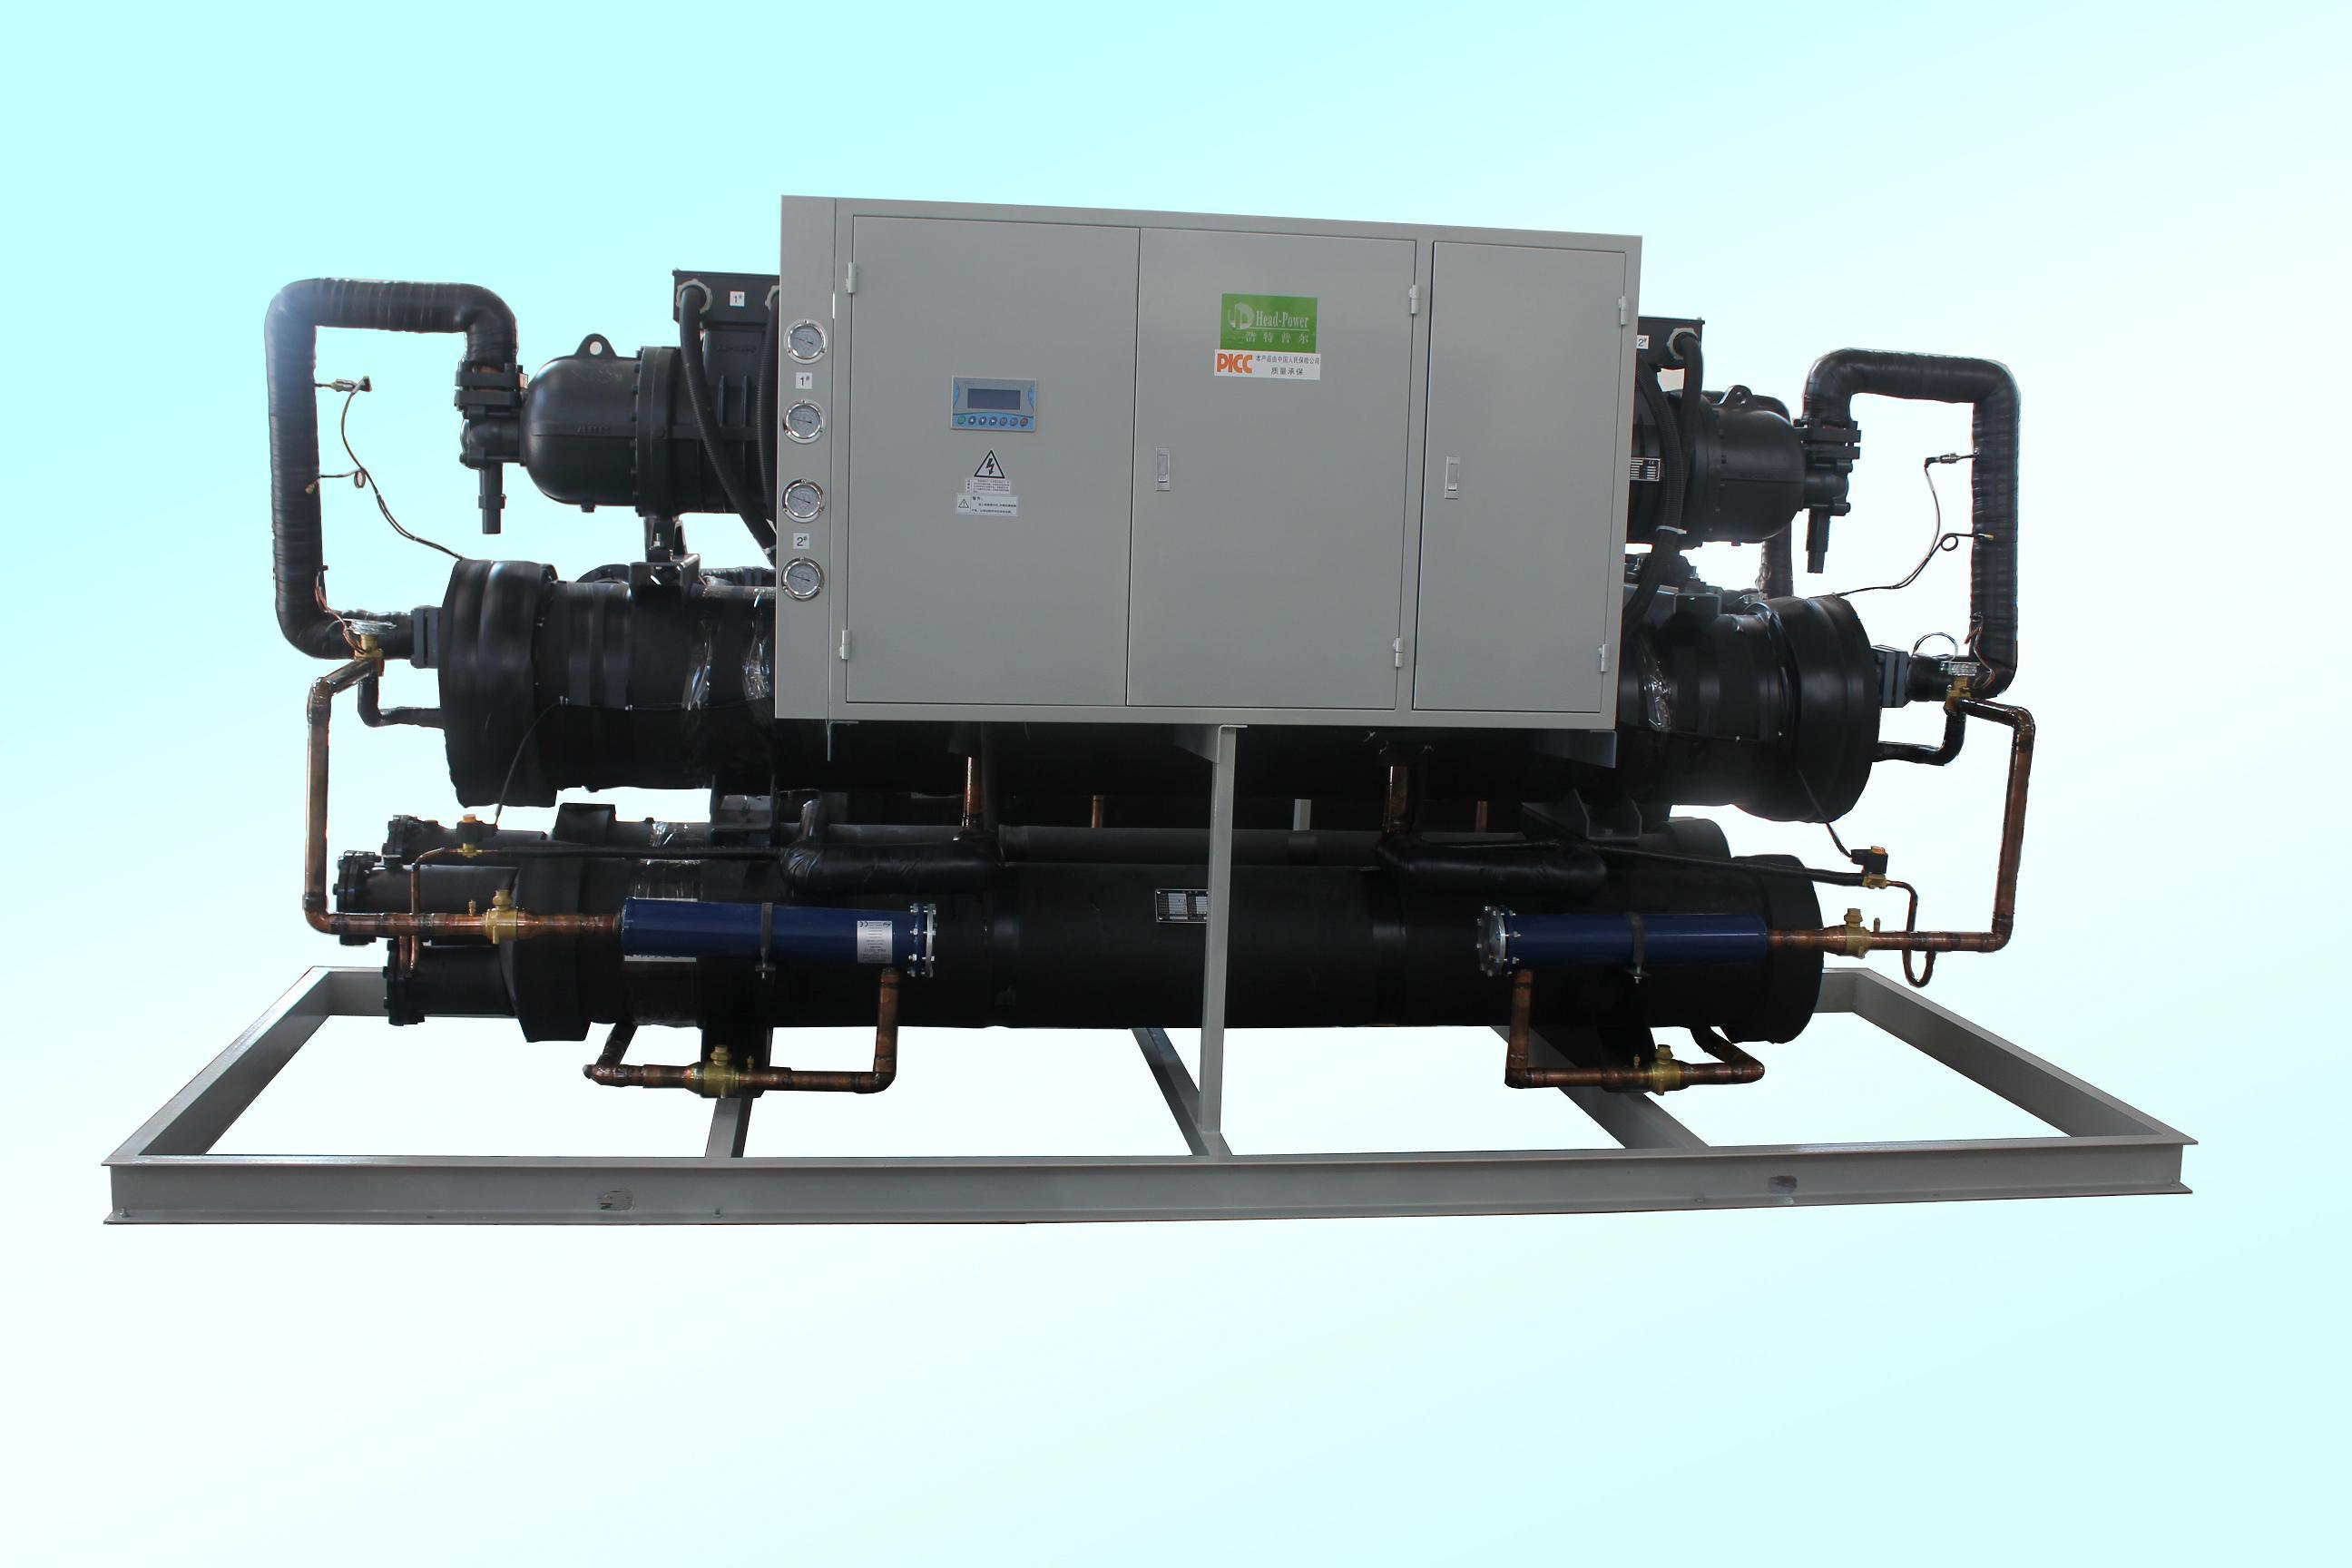 Water Chiller (HWWL) China Water Chiller Water Cooled Chiller #0CBFB8